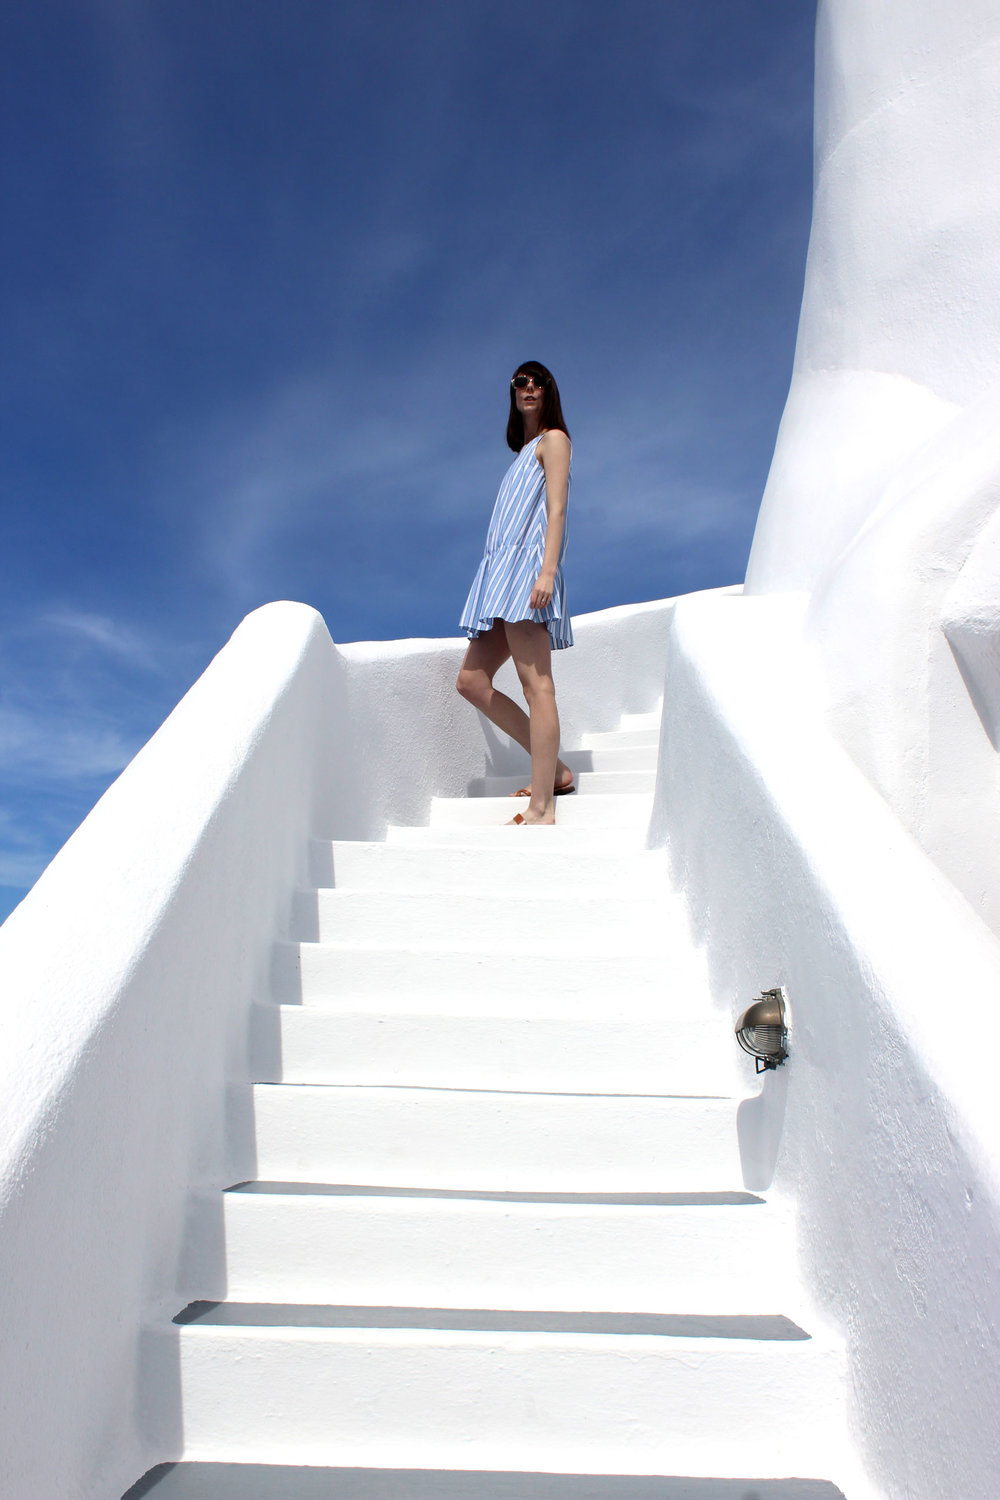 Blue skies and whitewashed walls at Ikies Hotel in Santorini, Greece.